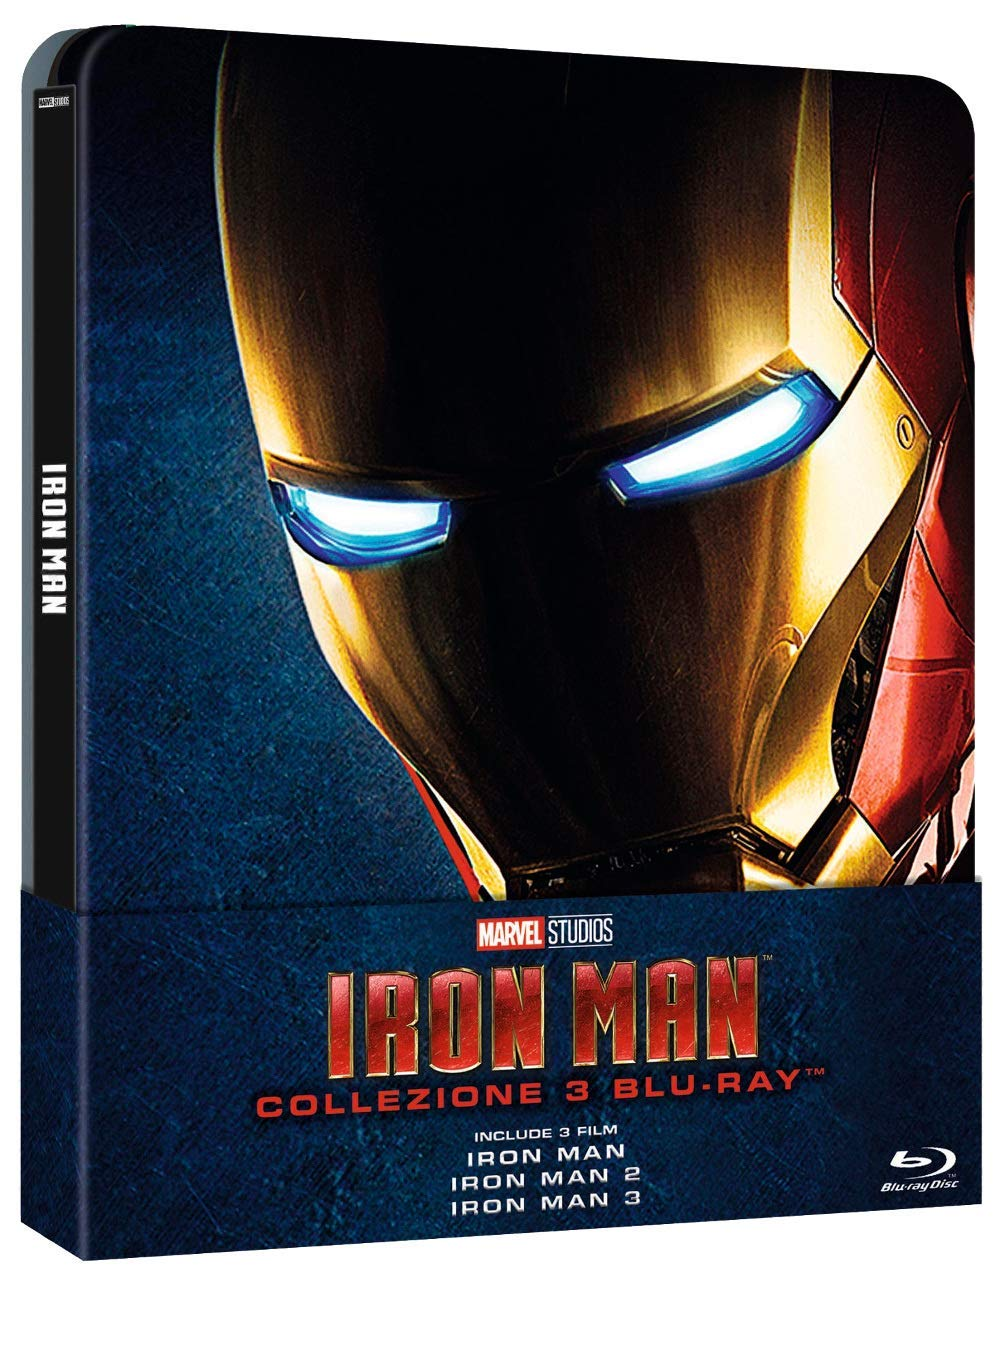 COF.IRON MAN TRILOGY (3 BLU-RAY) (STEELBOOK)